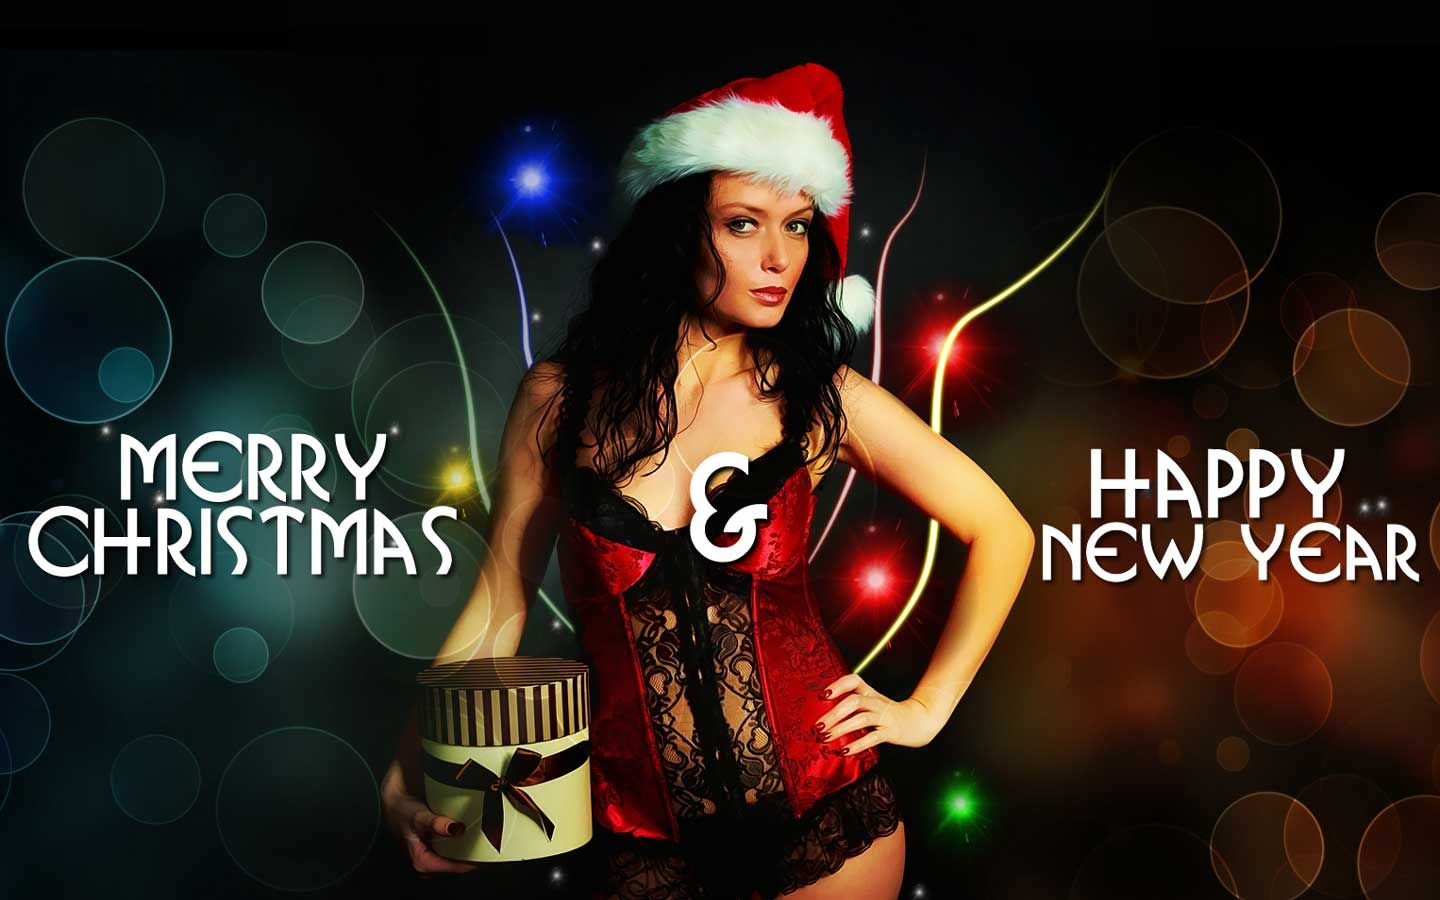 cool Hot And Sexy Christmas Girl New Year Wallpapers 2012 ...